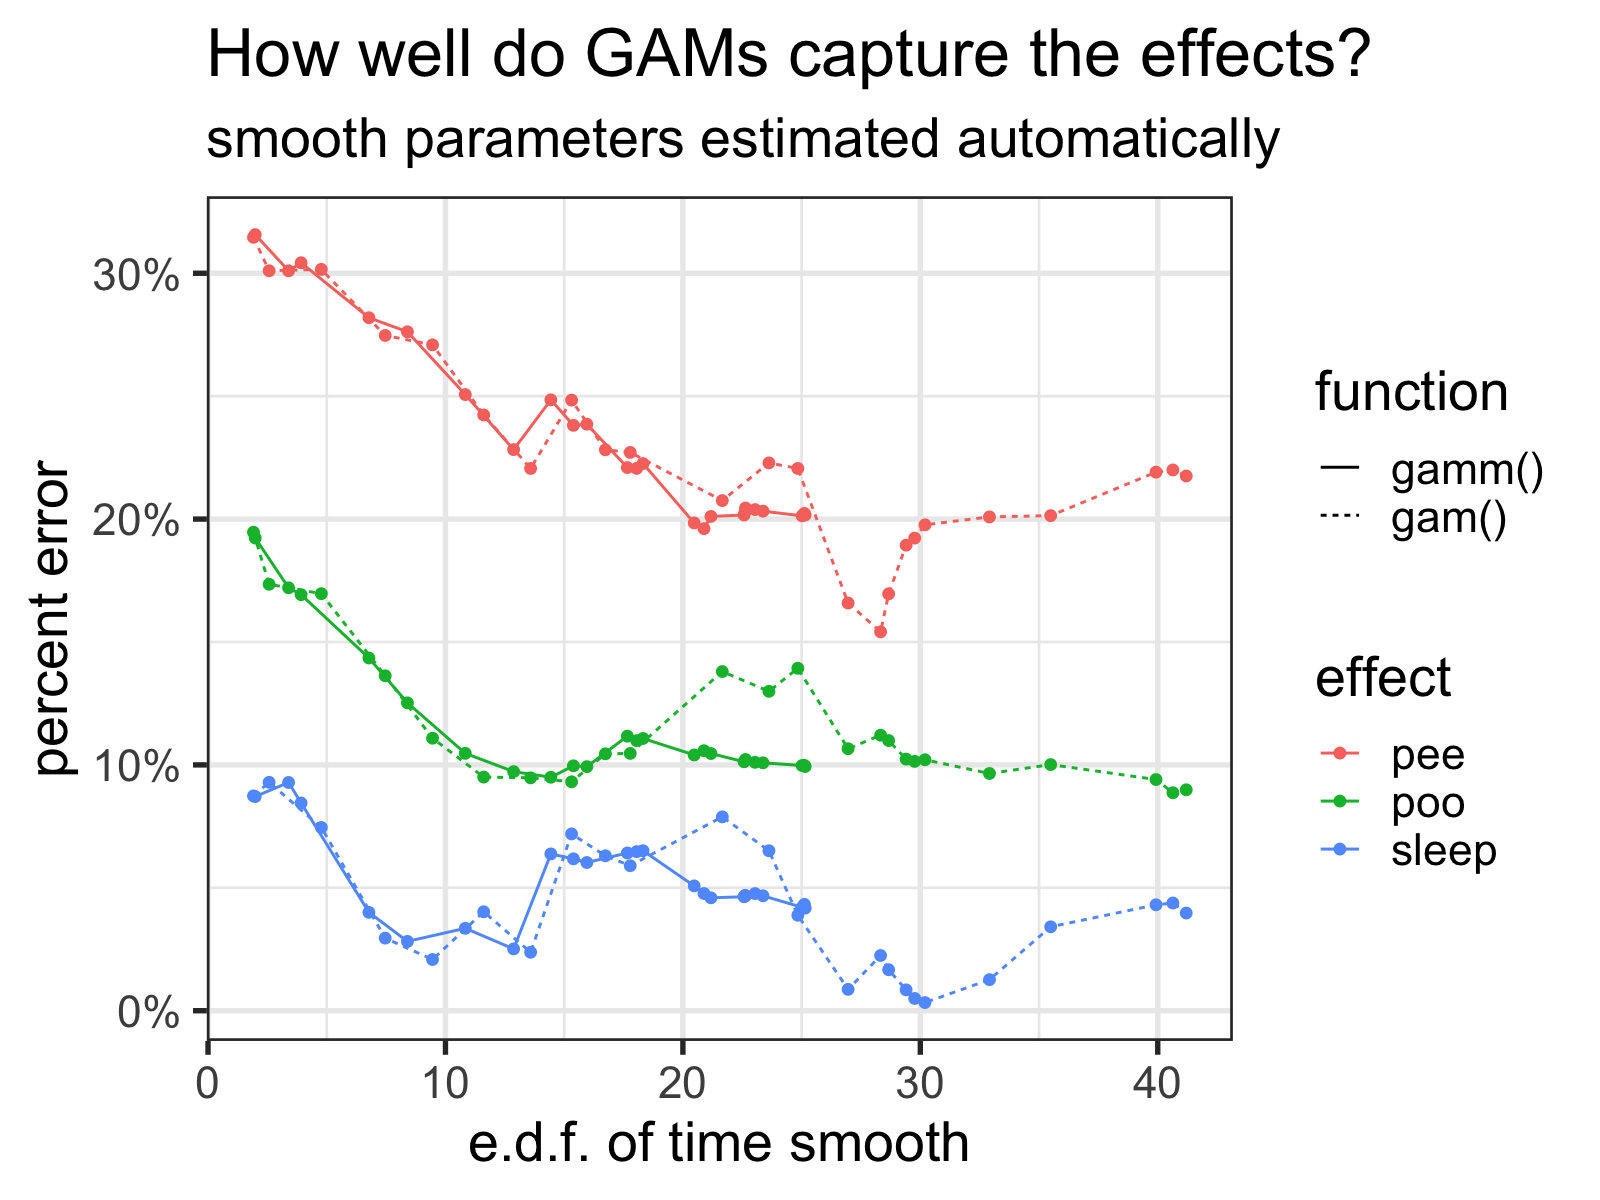 How well the GAMs capture the effects versus the number of basis functions of the time smooth (represented via the estimated degrees of freedom for the smooth) as <code>k</code> increases. Note how the <code>gamm()</code> function tops out around 25.